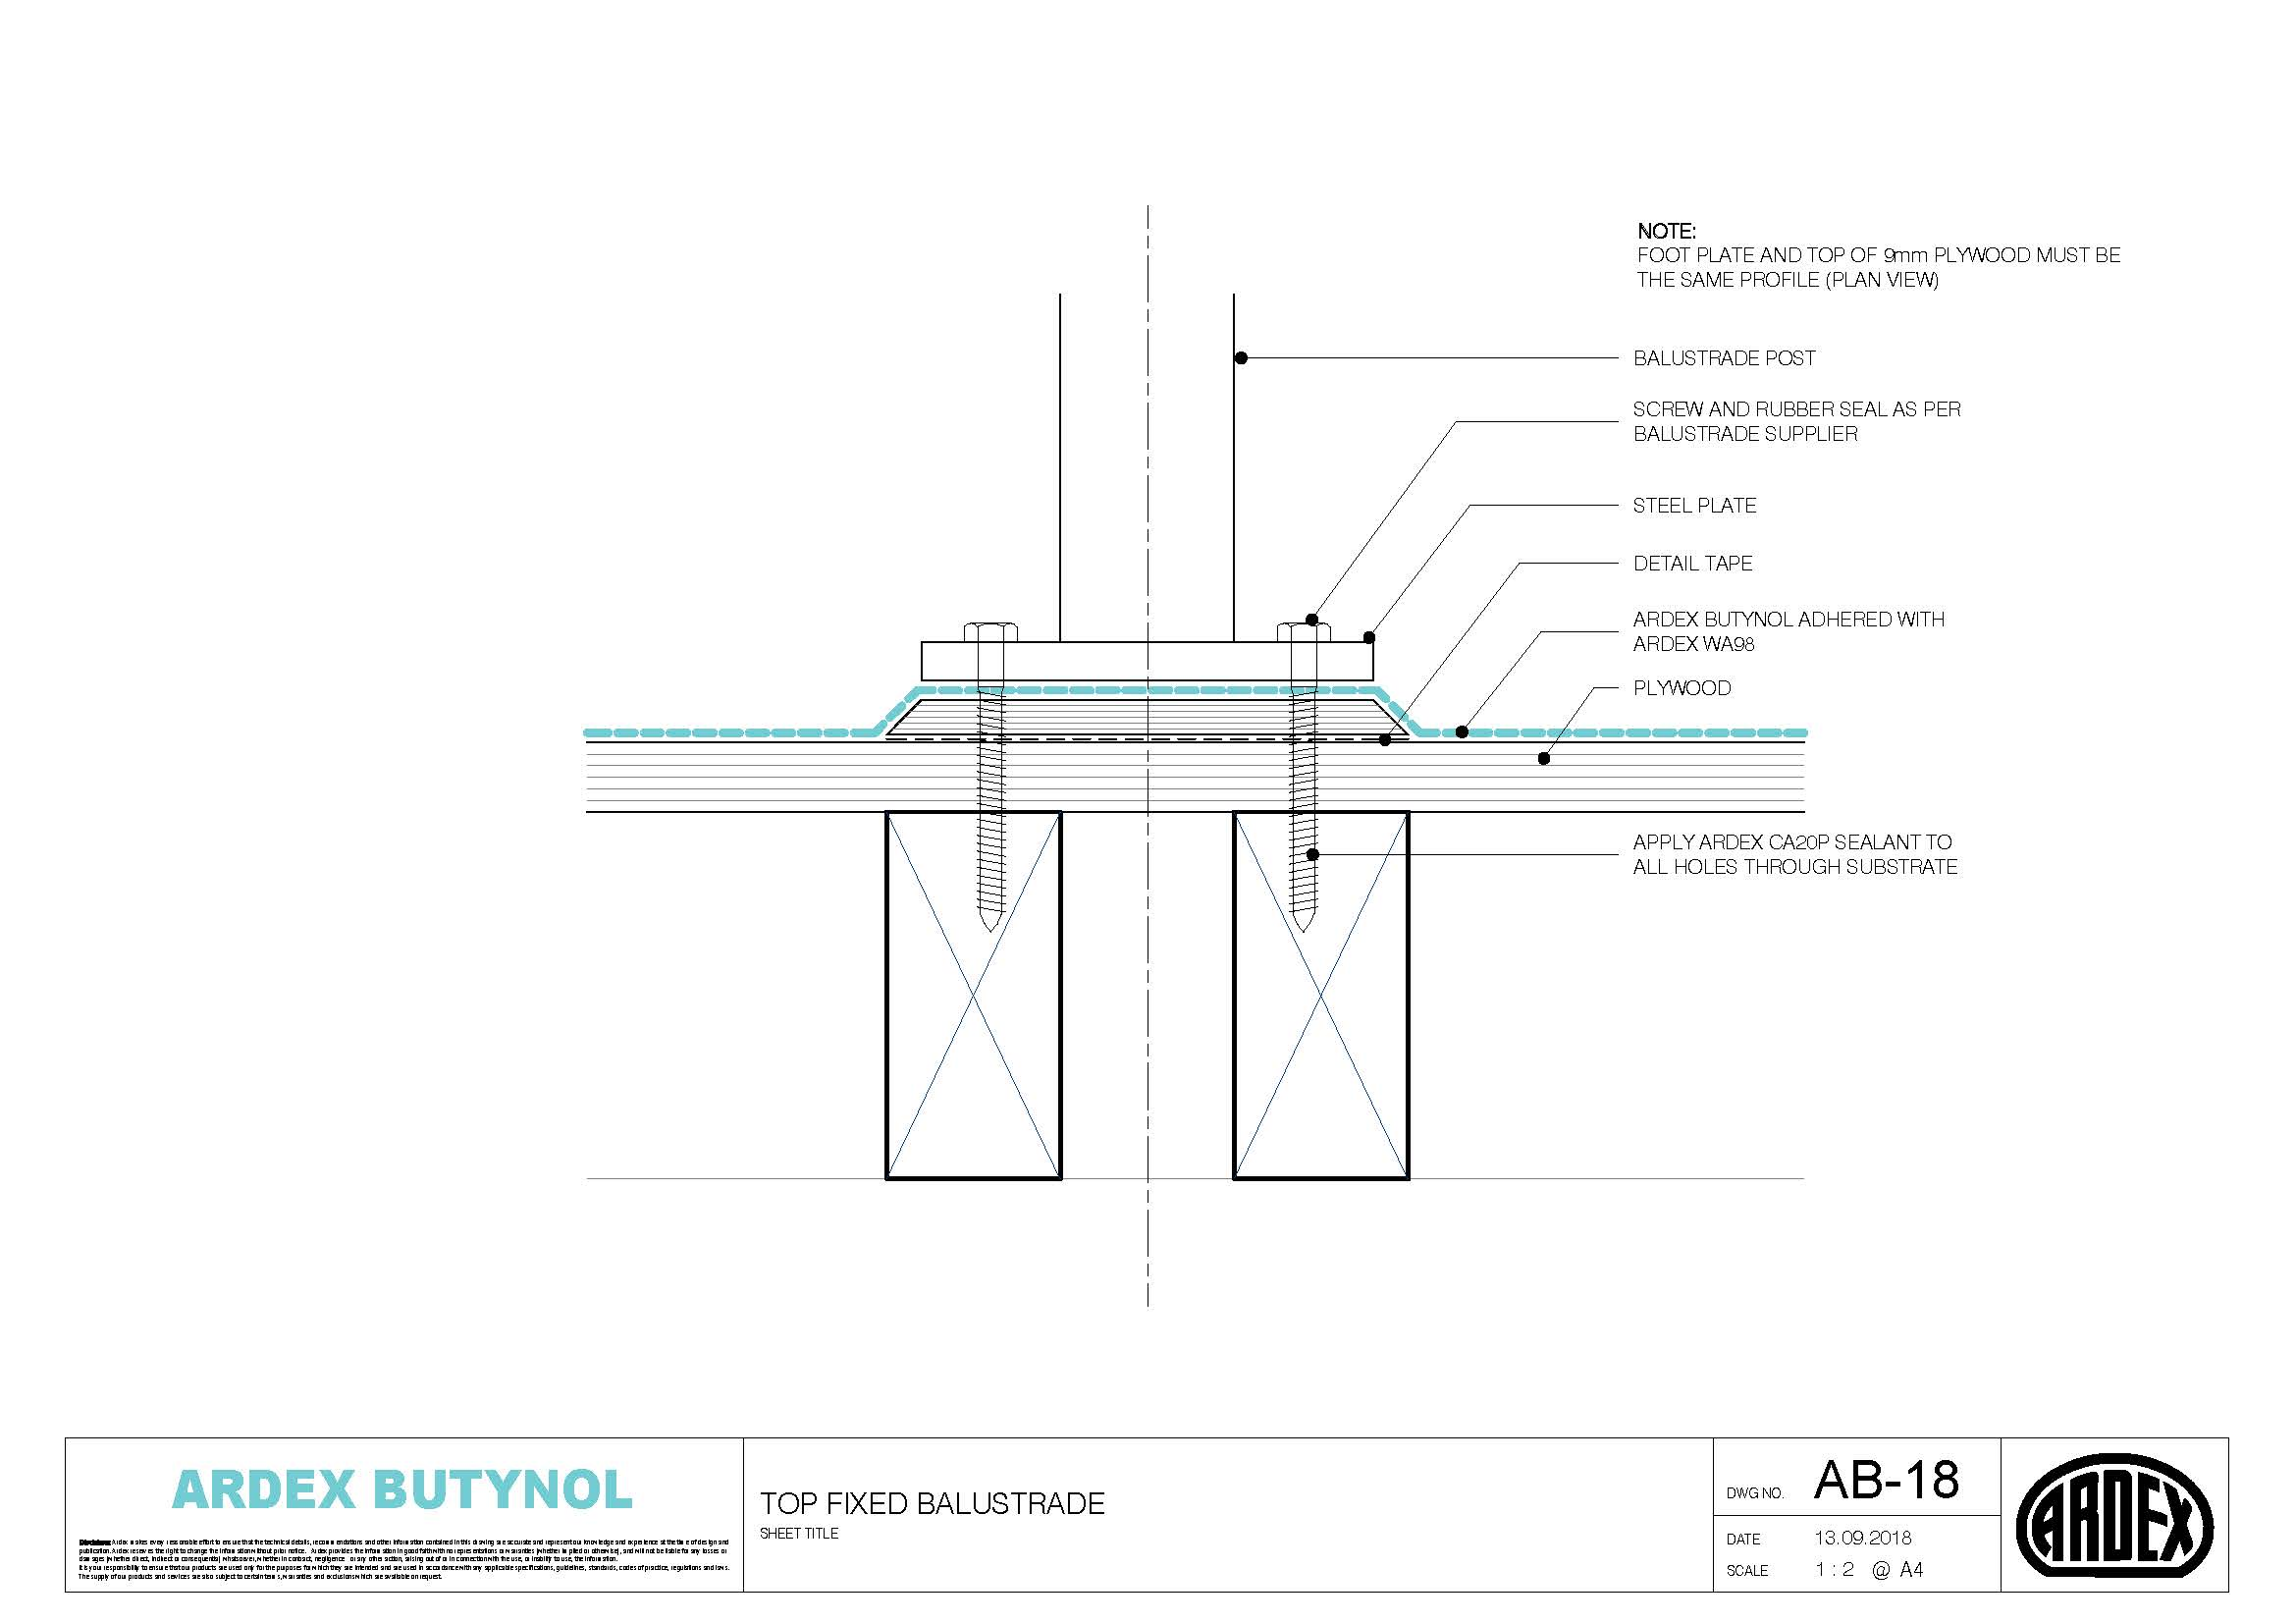 Butnol Technical Drawing